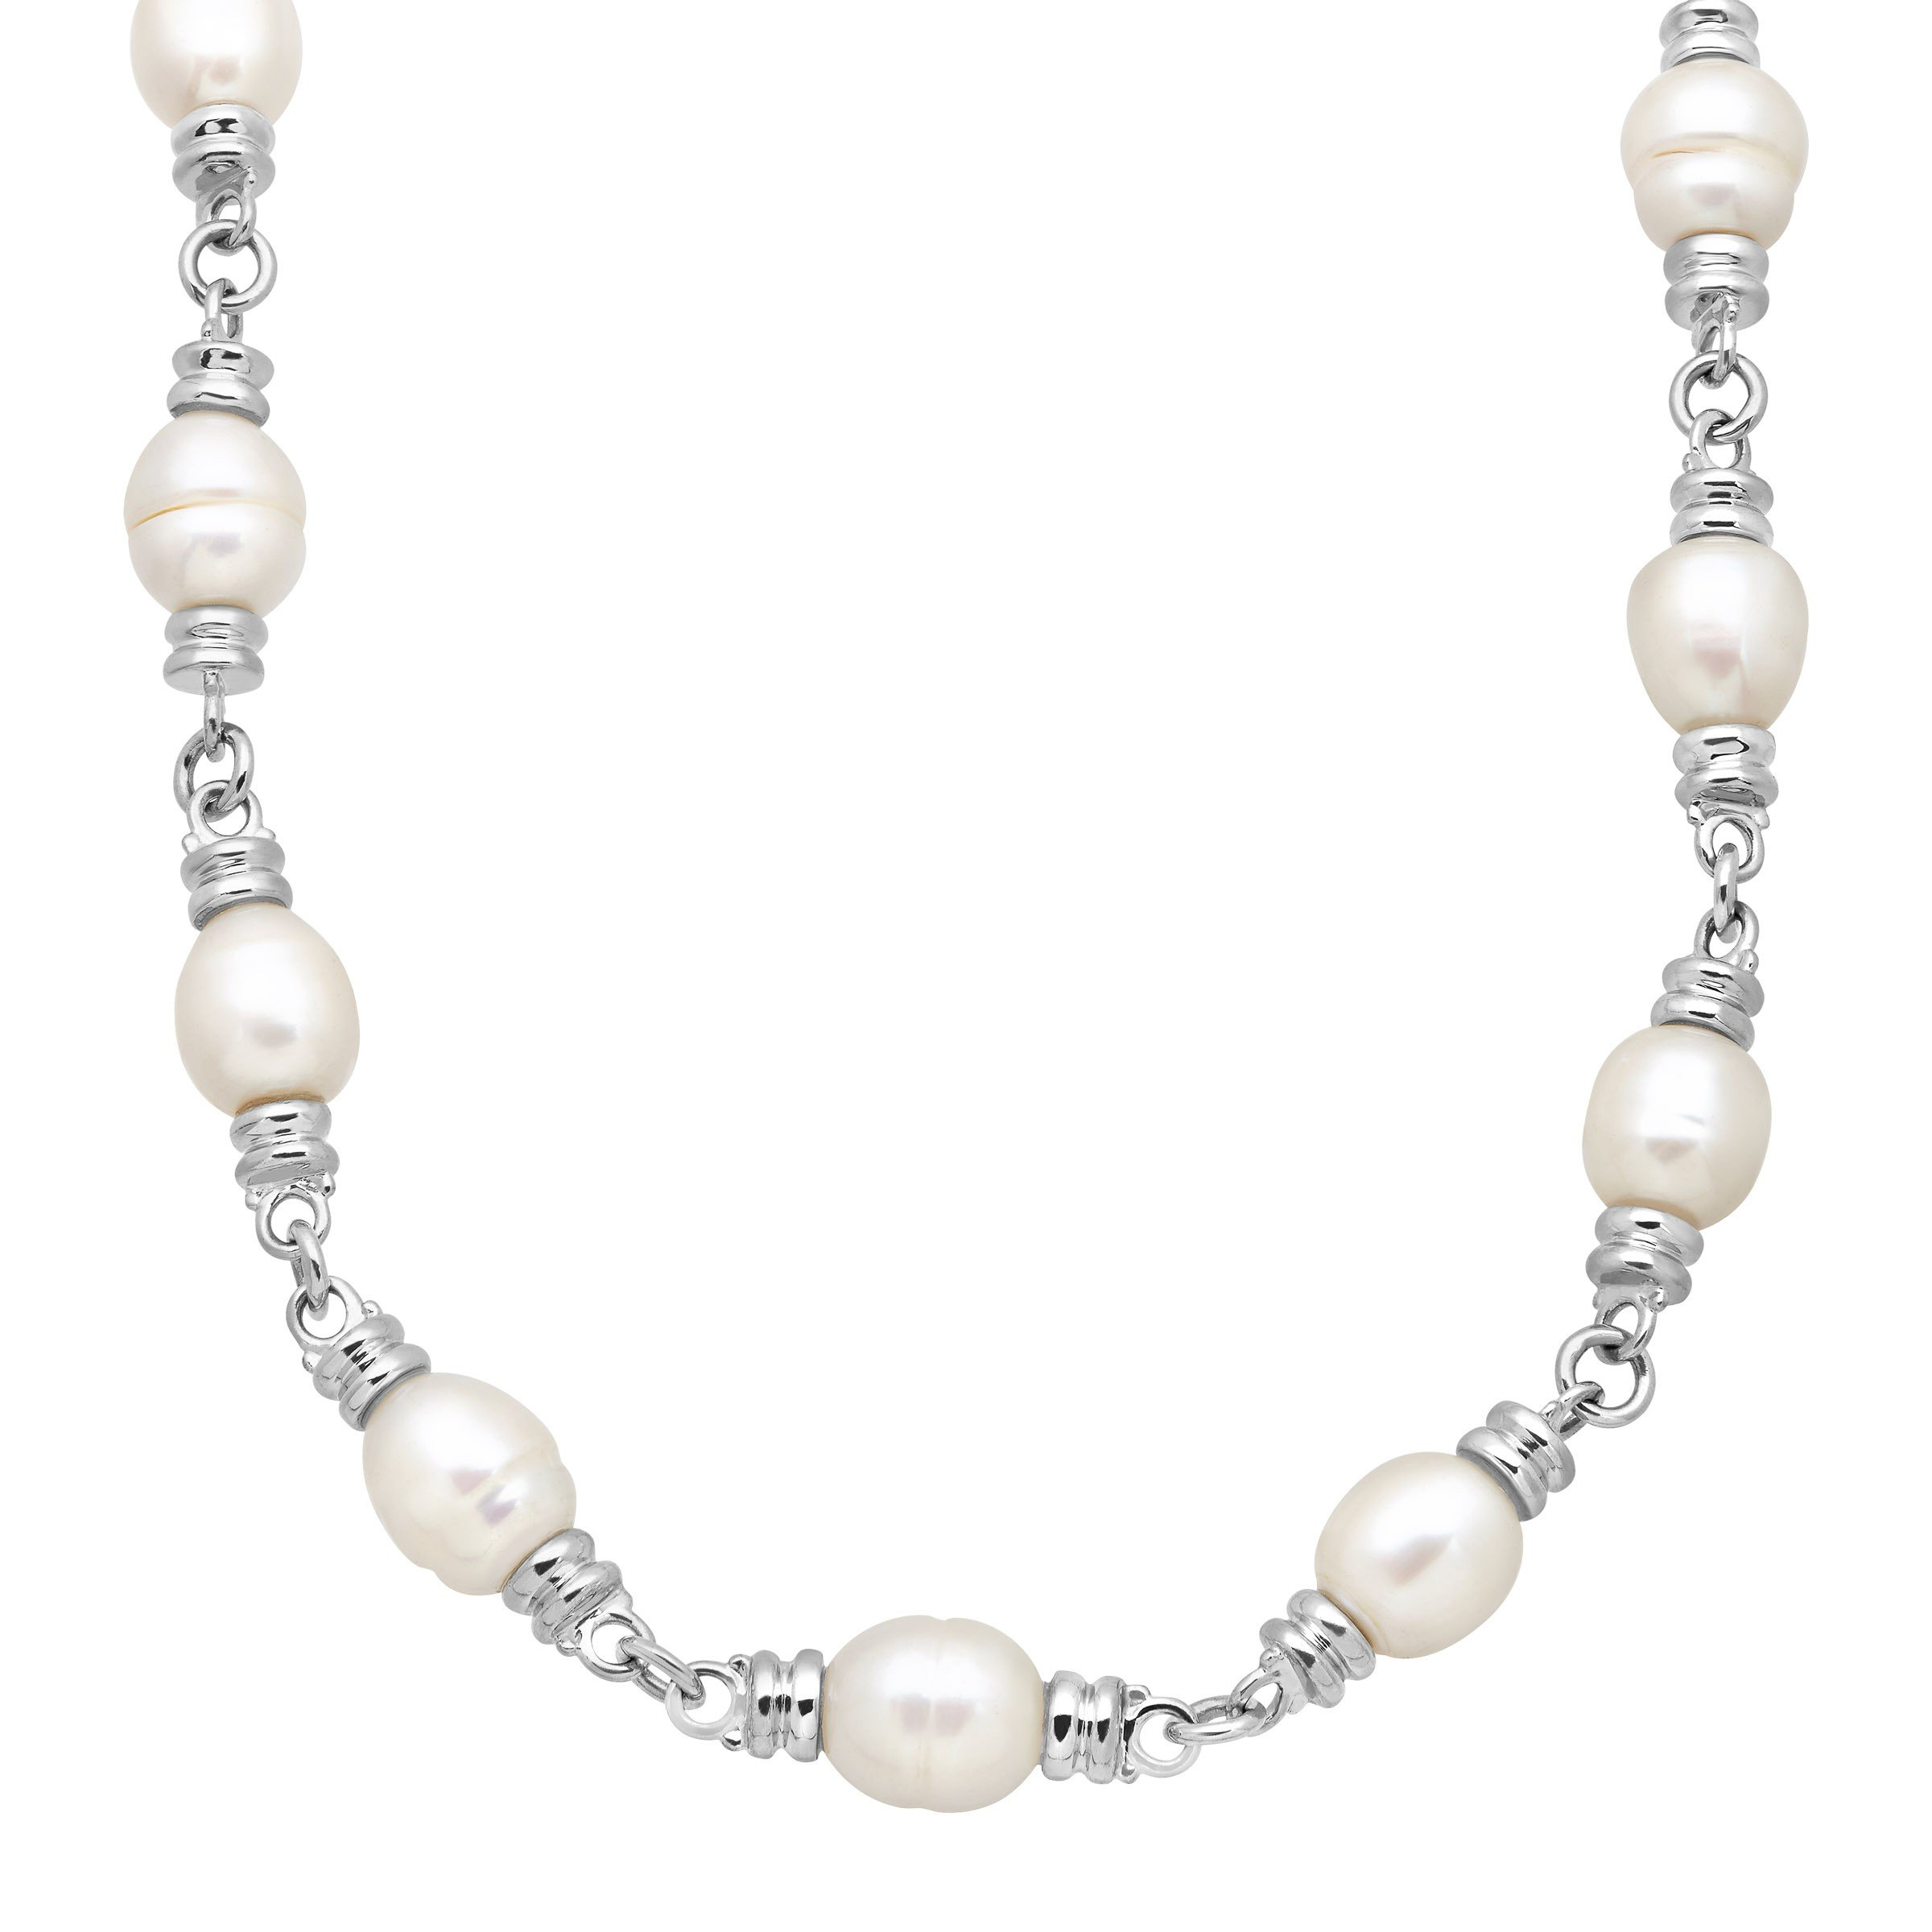 Honora 10-11 mm Freshwater Ringed Cultured Pearl Link Toggle Necklace in Sterling Silver